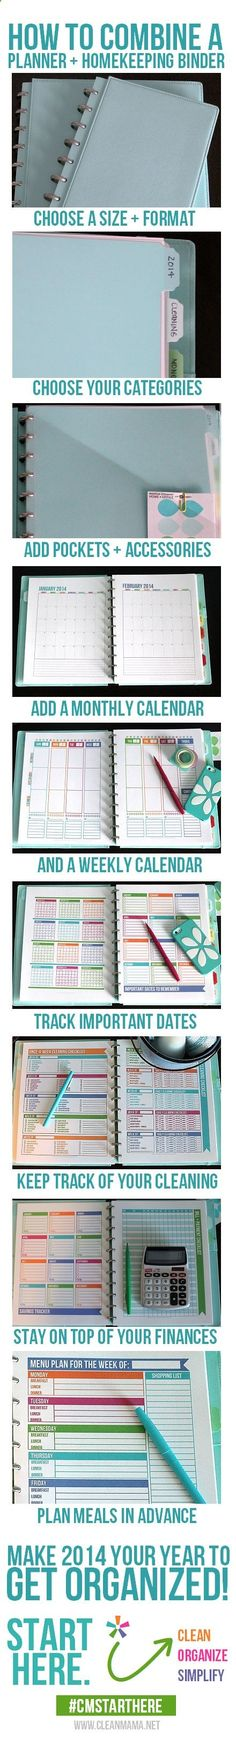 Say goodbye to disorganization and get your life together with this fantastic tutorial. How to Combine a Planner   Homekeeping Binder via Clean Mama